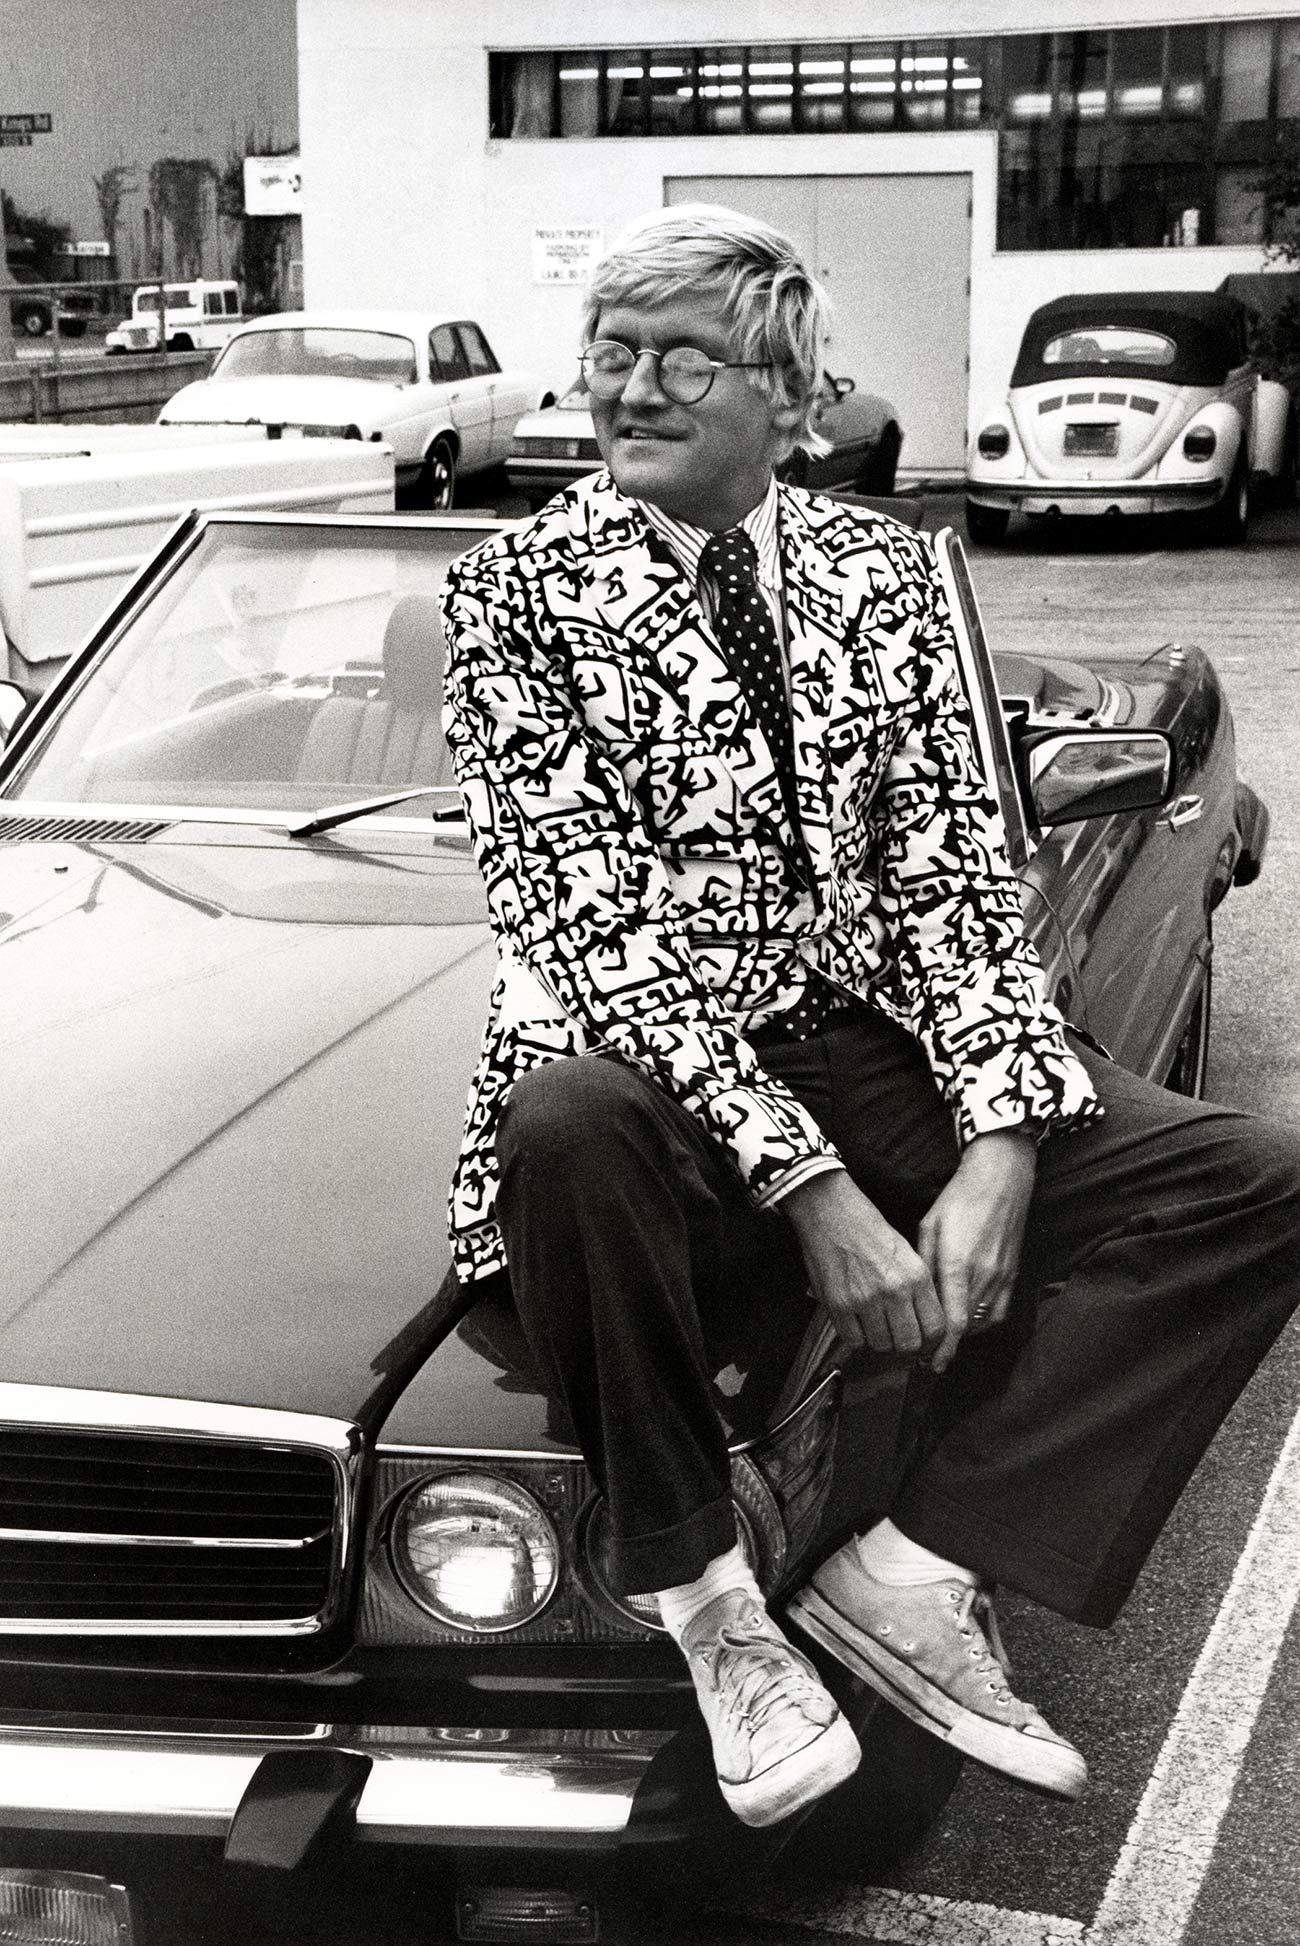 Artist David Hockney wears a patterned blazer and sits casually on the hood of a car, smiling.